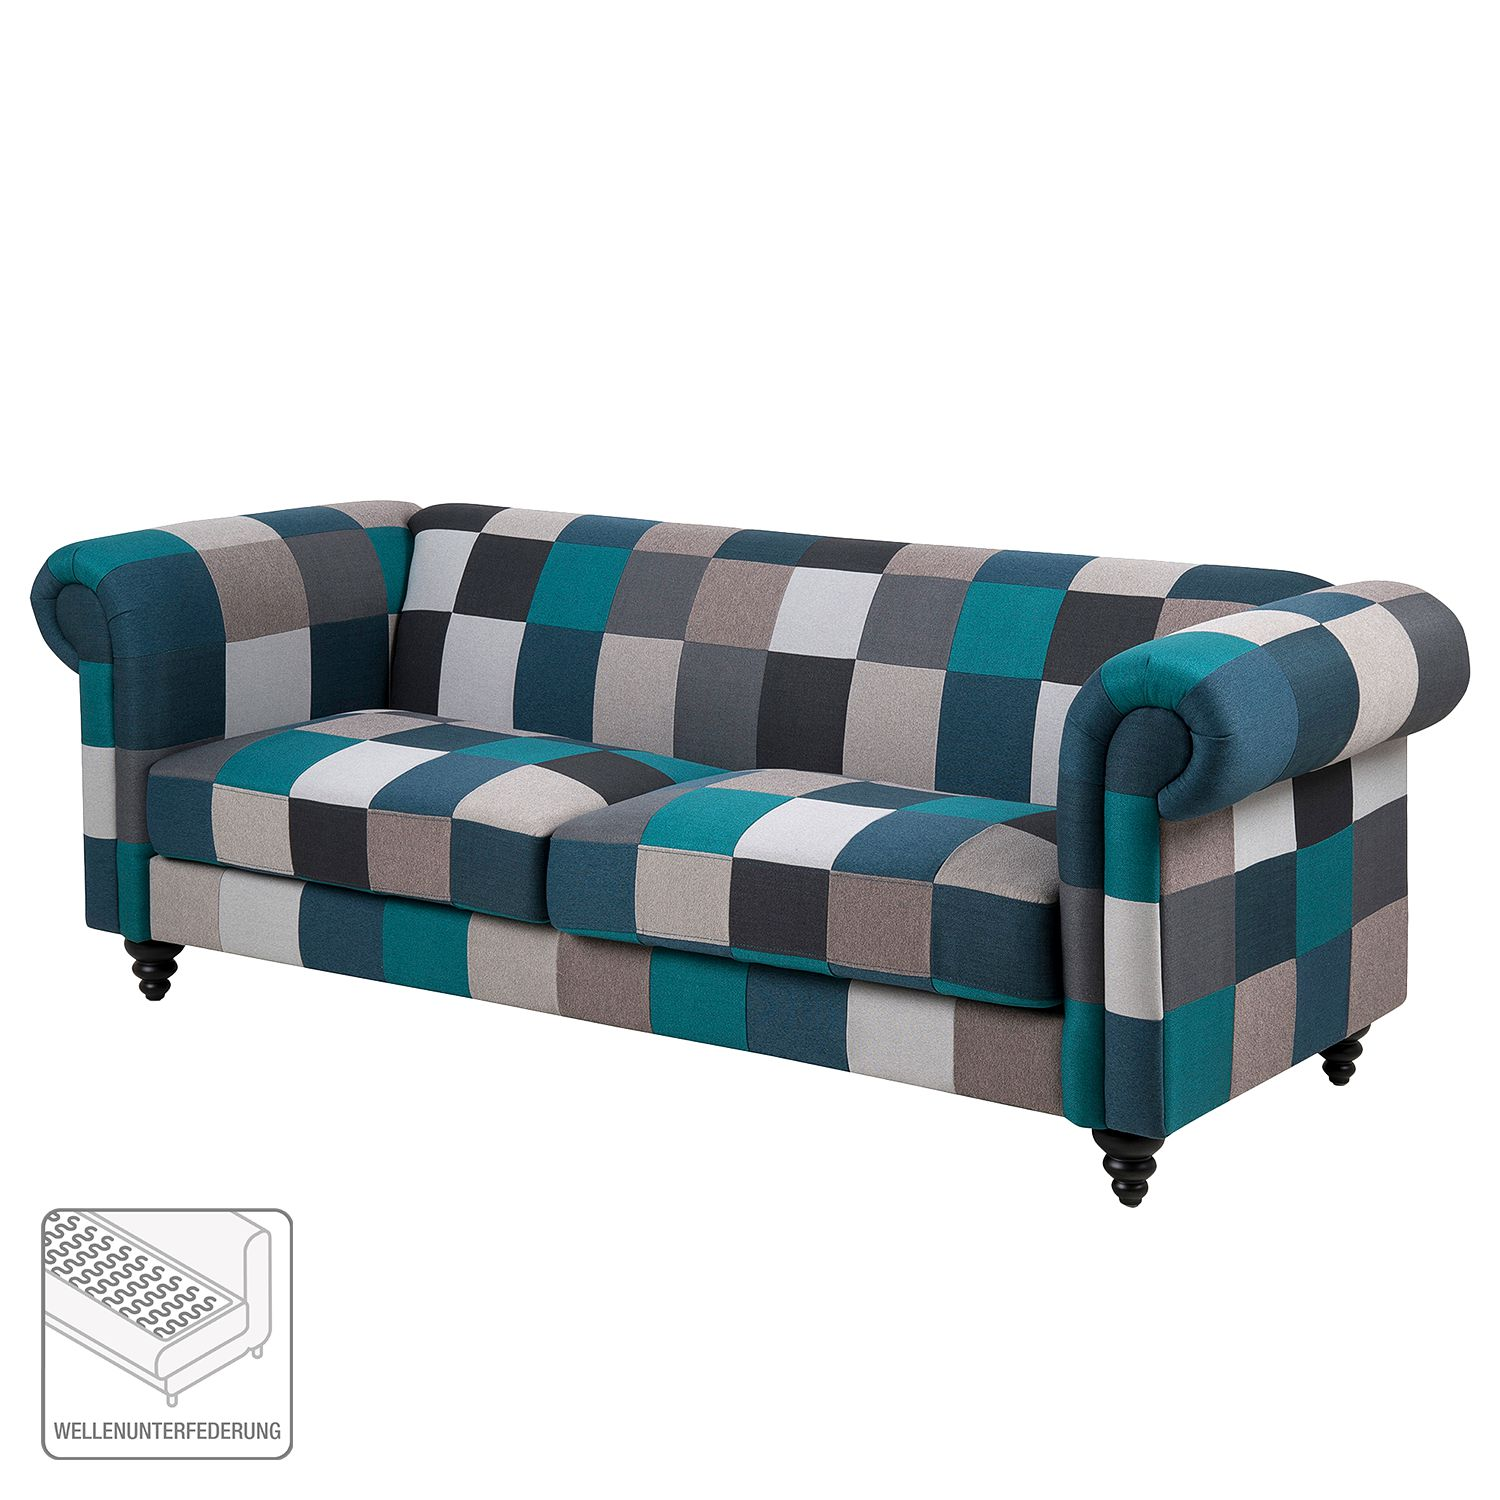 83 wohnzimmer couch home24 home24 sessel. Black Bedroom Furniture Sets. Home Design Ideas